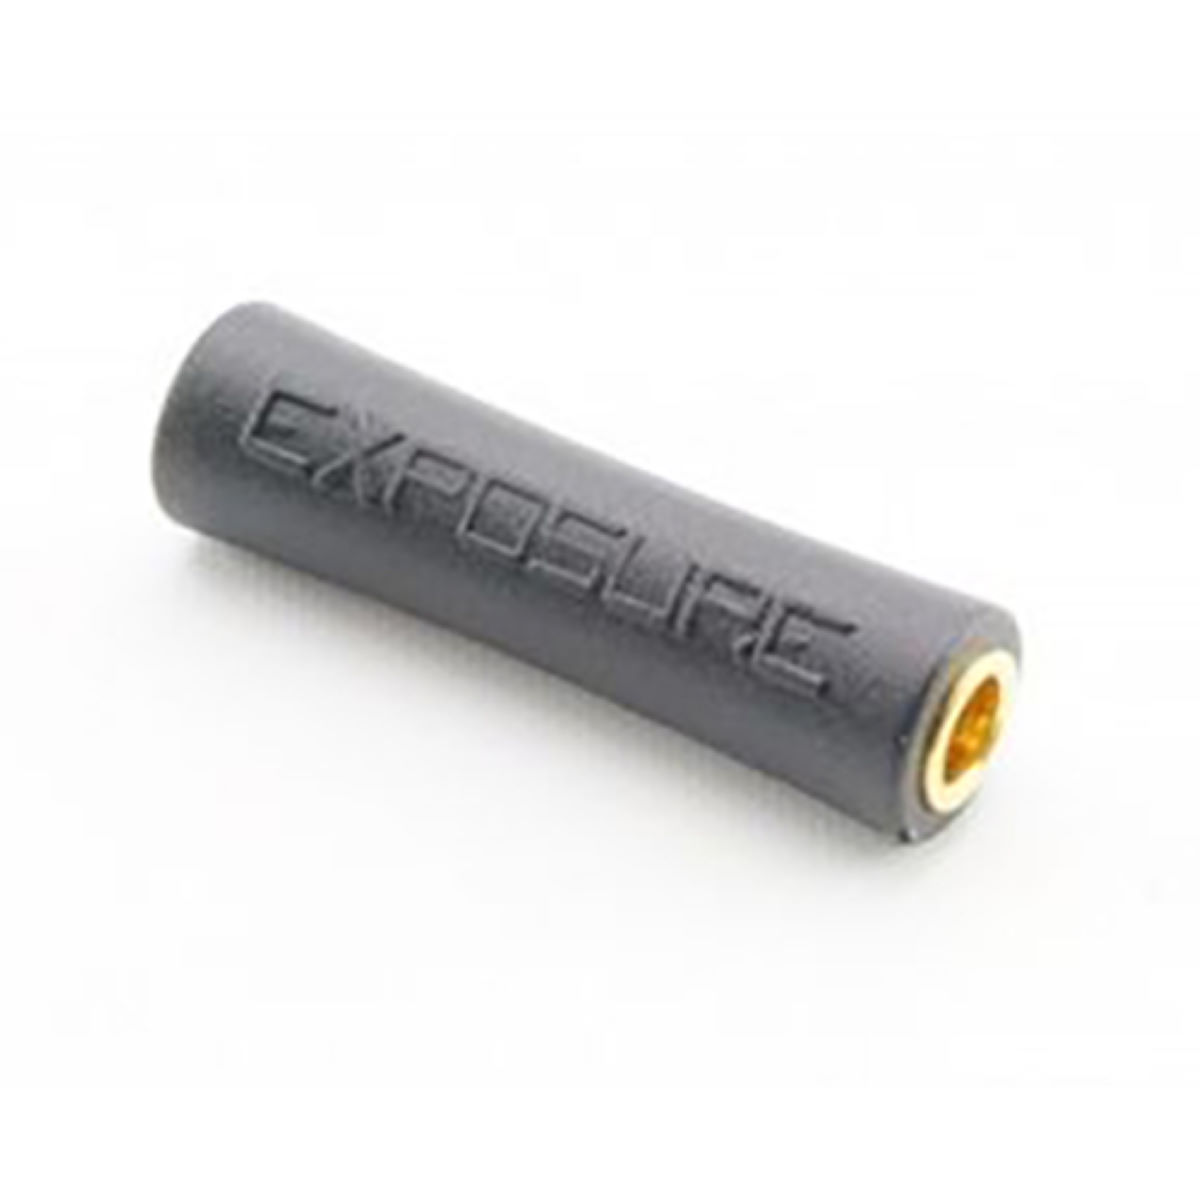 Exposure Piggyback Or Support Cell Connector For Charging - Baterías y pilas